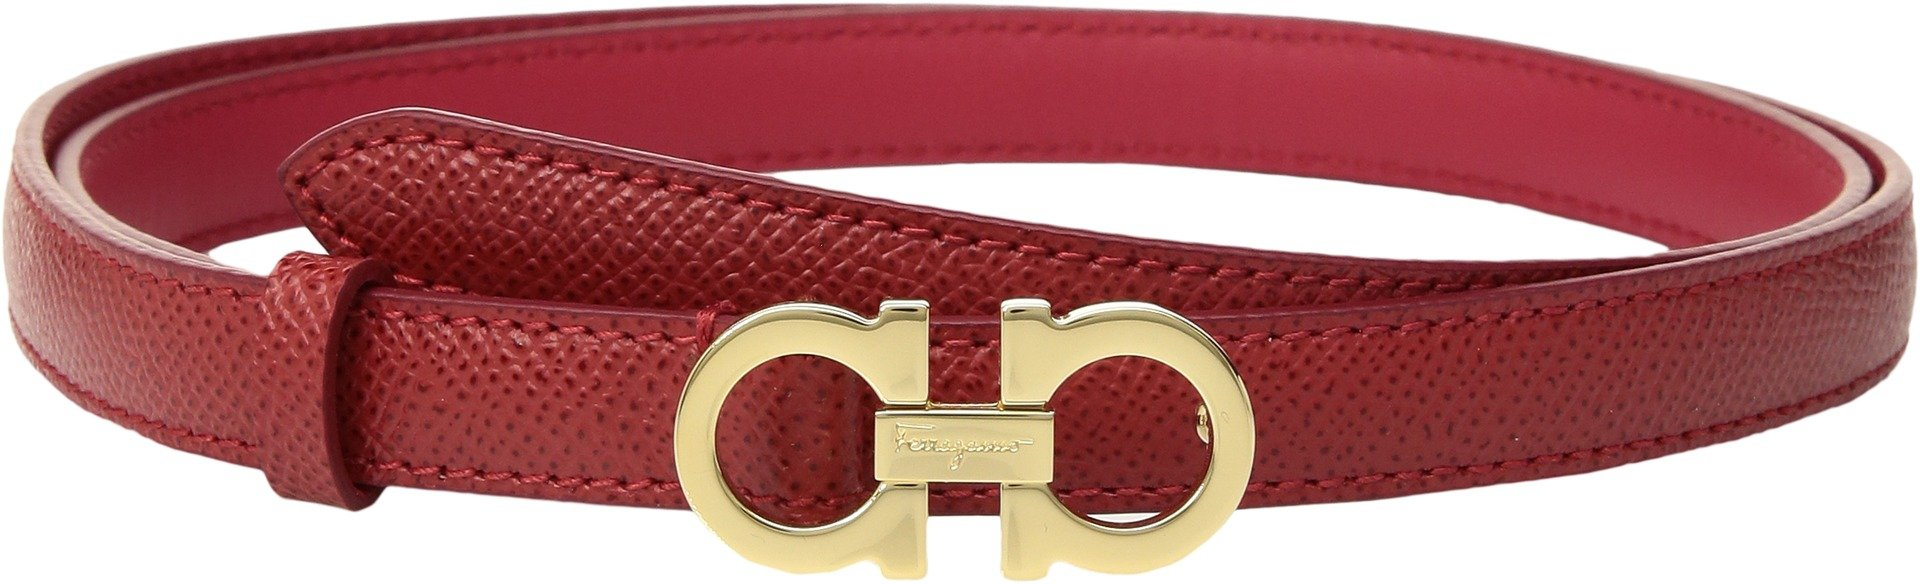 Salvatore Ferragamo Women's Thin Leather Gancini Belt Lipstick 80 (32'' Waist)